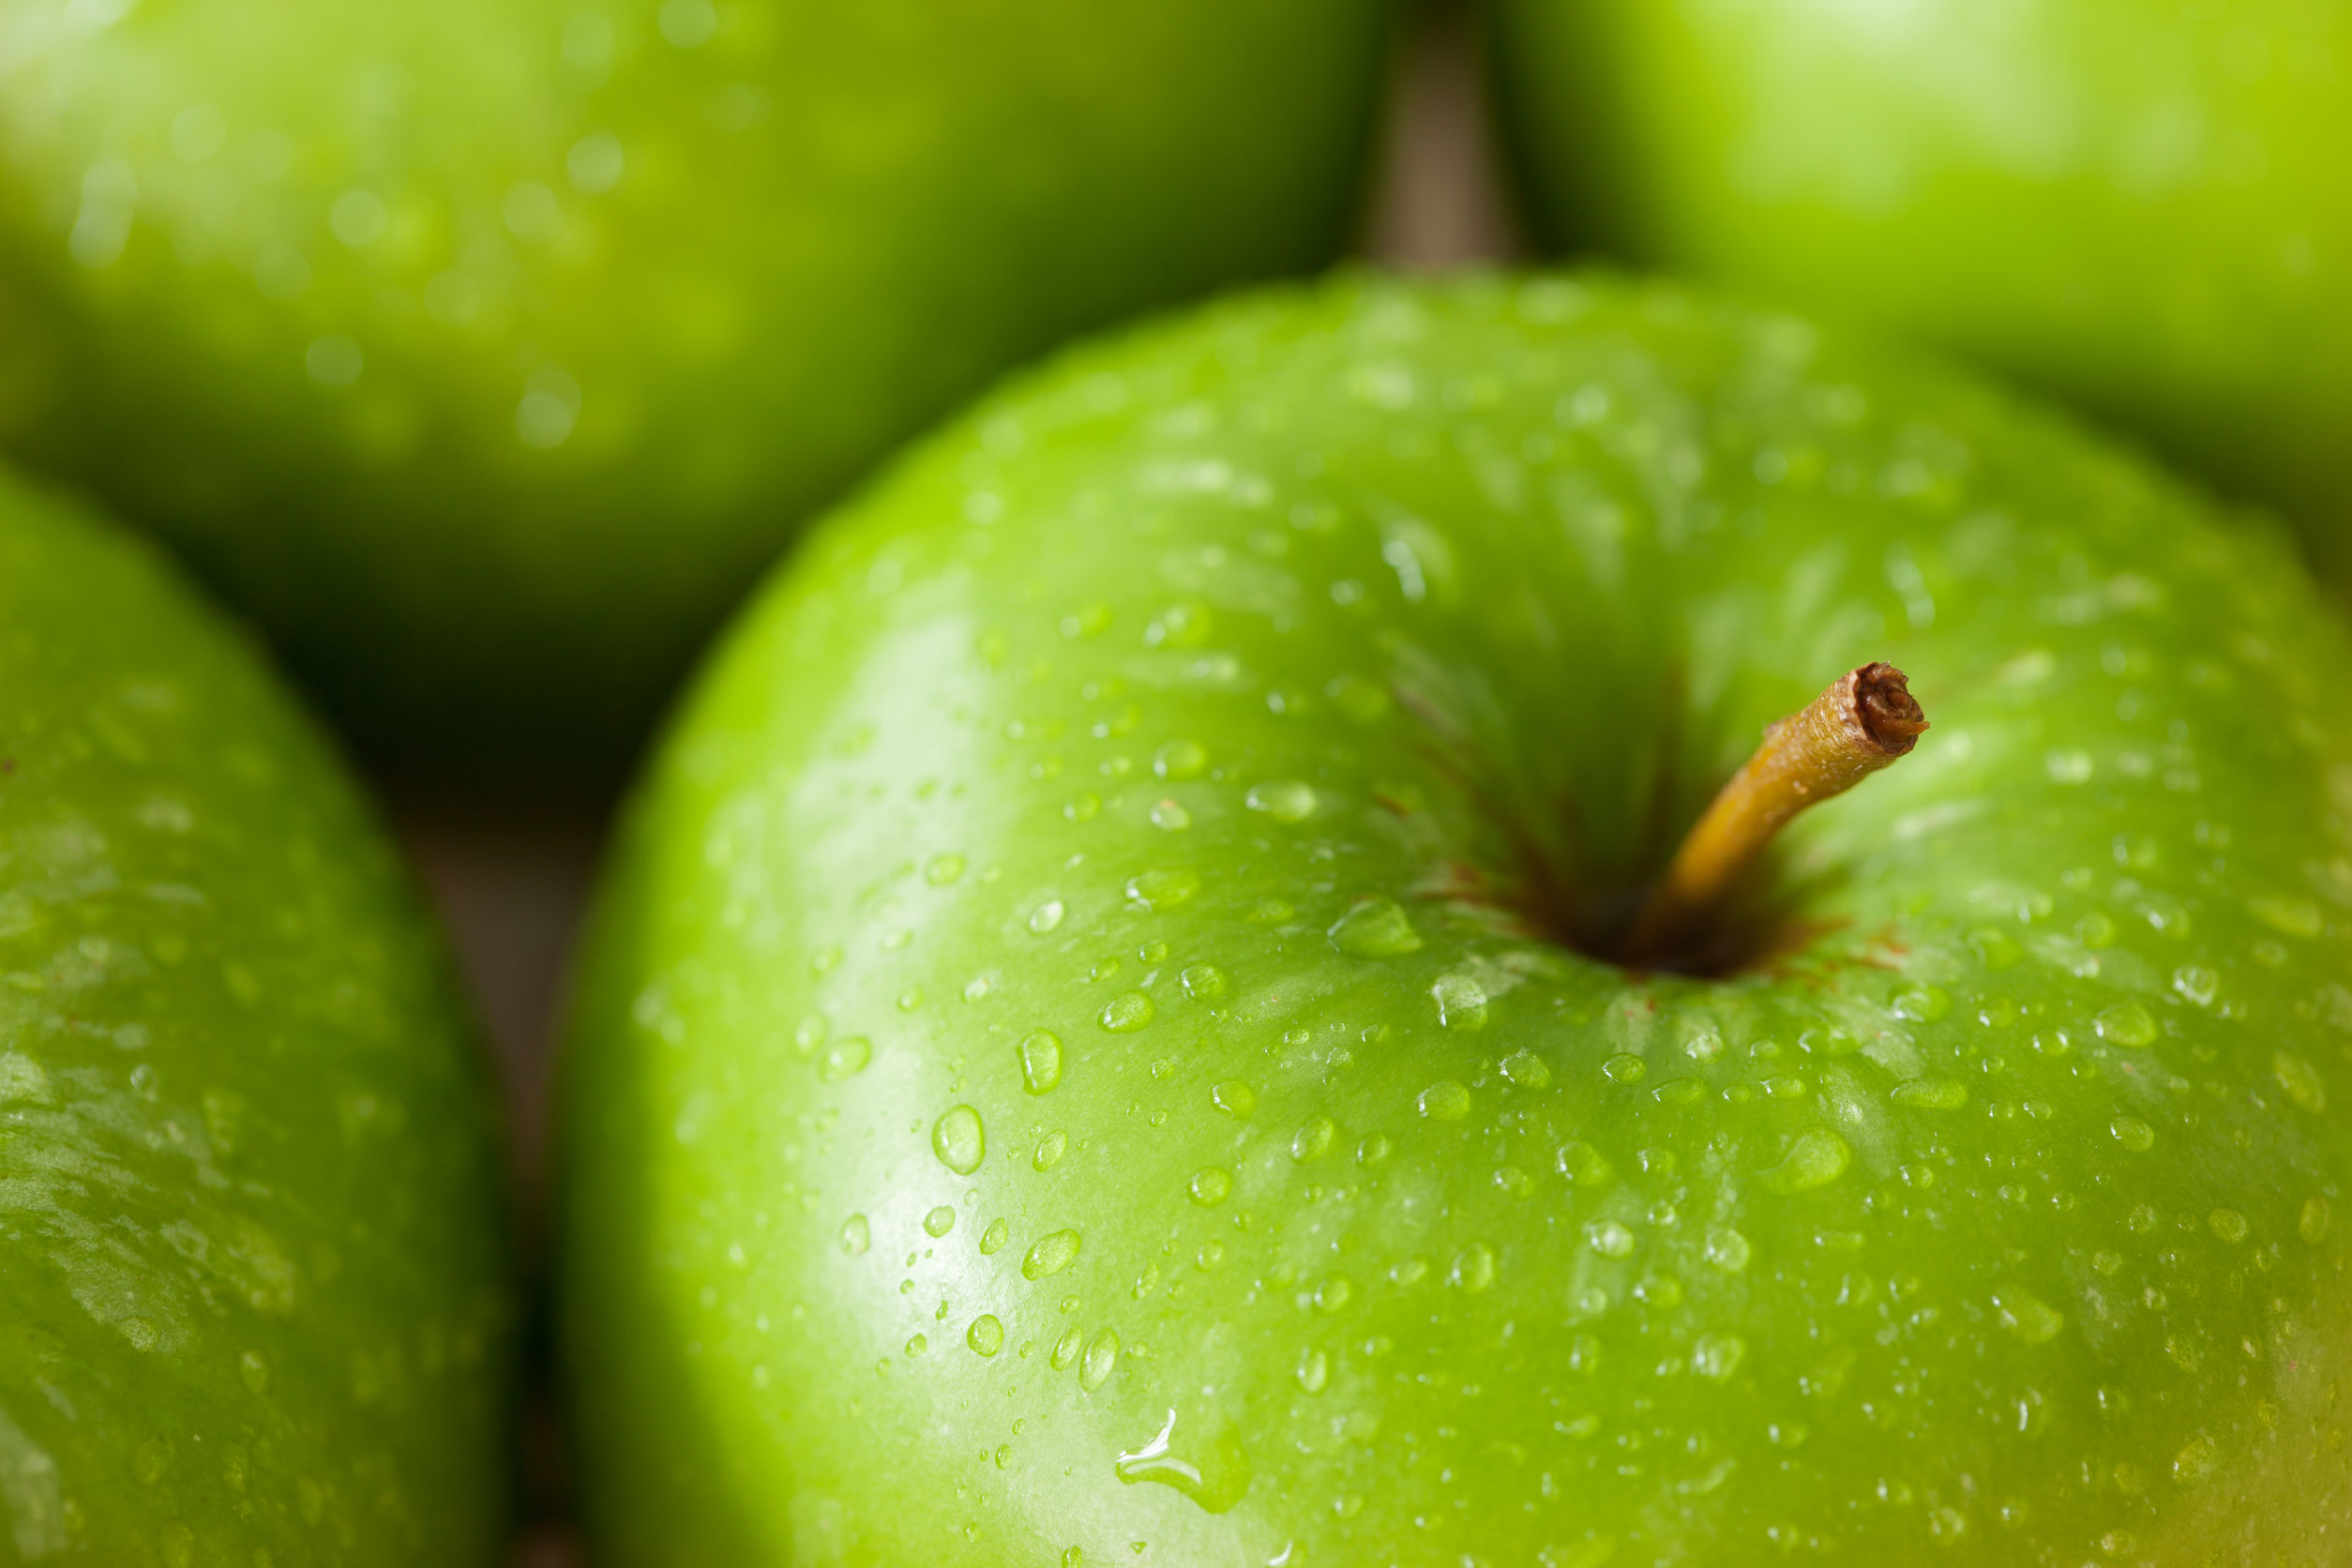 43624345 - green apple with water drop close up